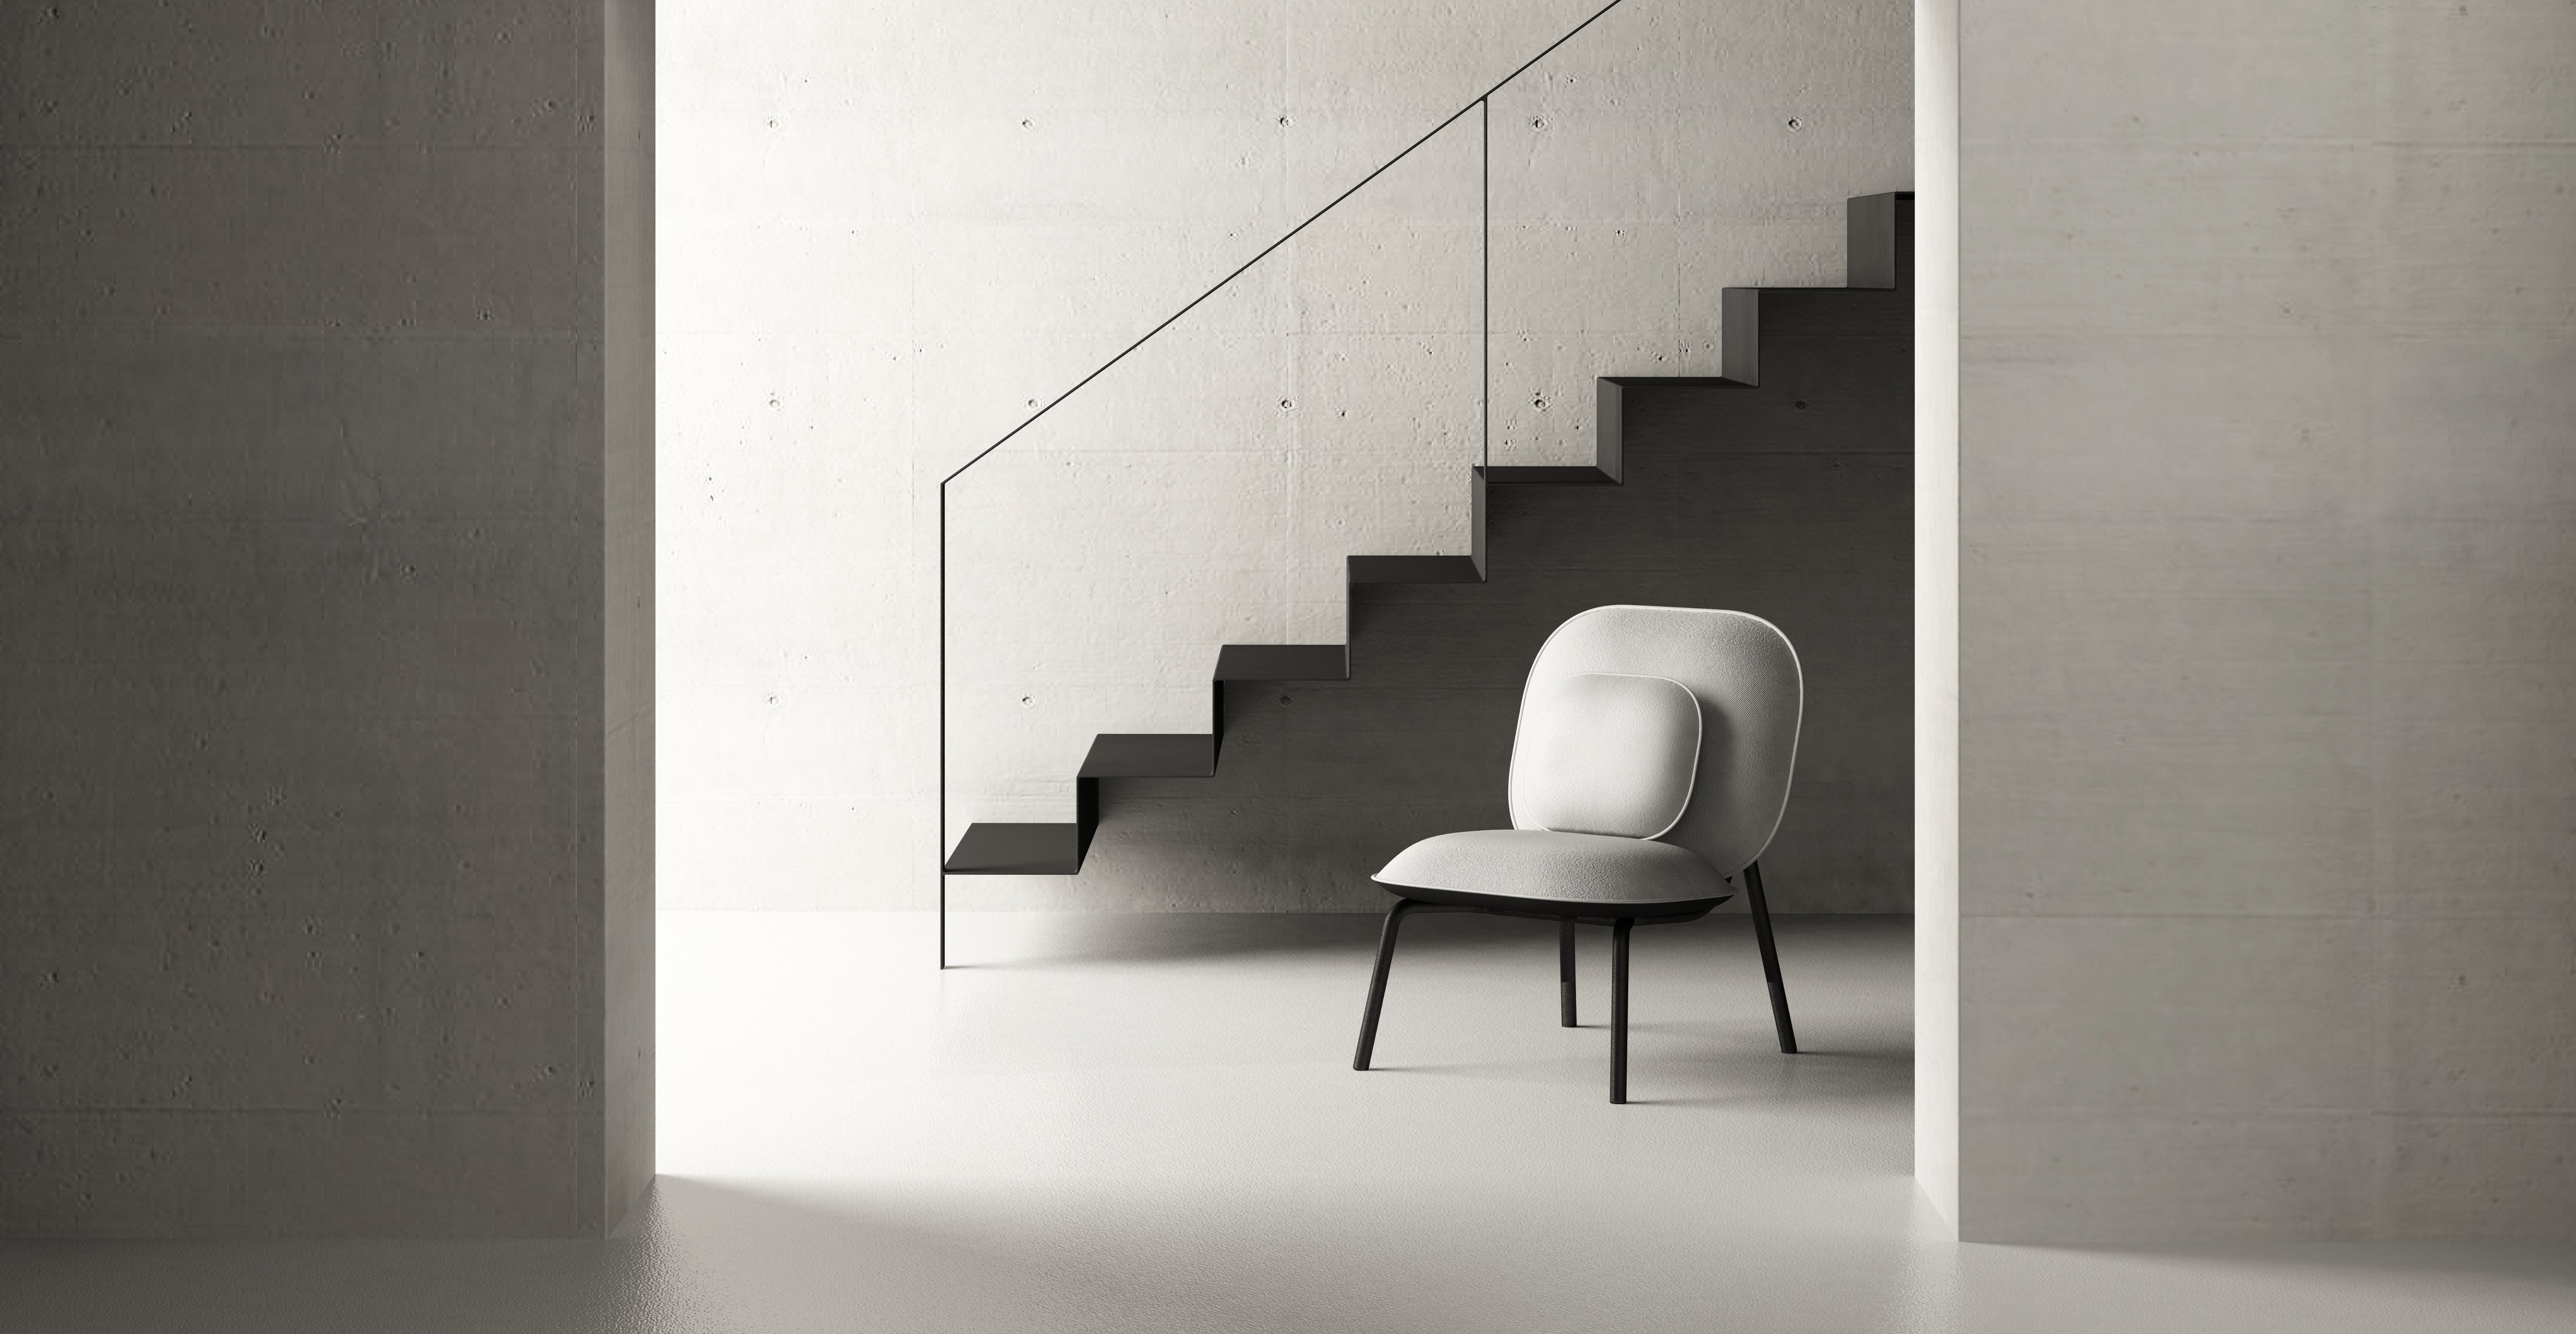 Tasca Lounge Chair by TOOU. Modern Minimal industrial Environment with Staircase.